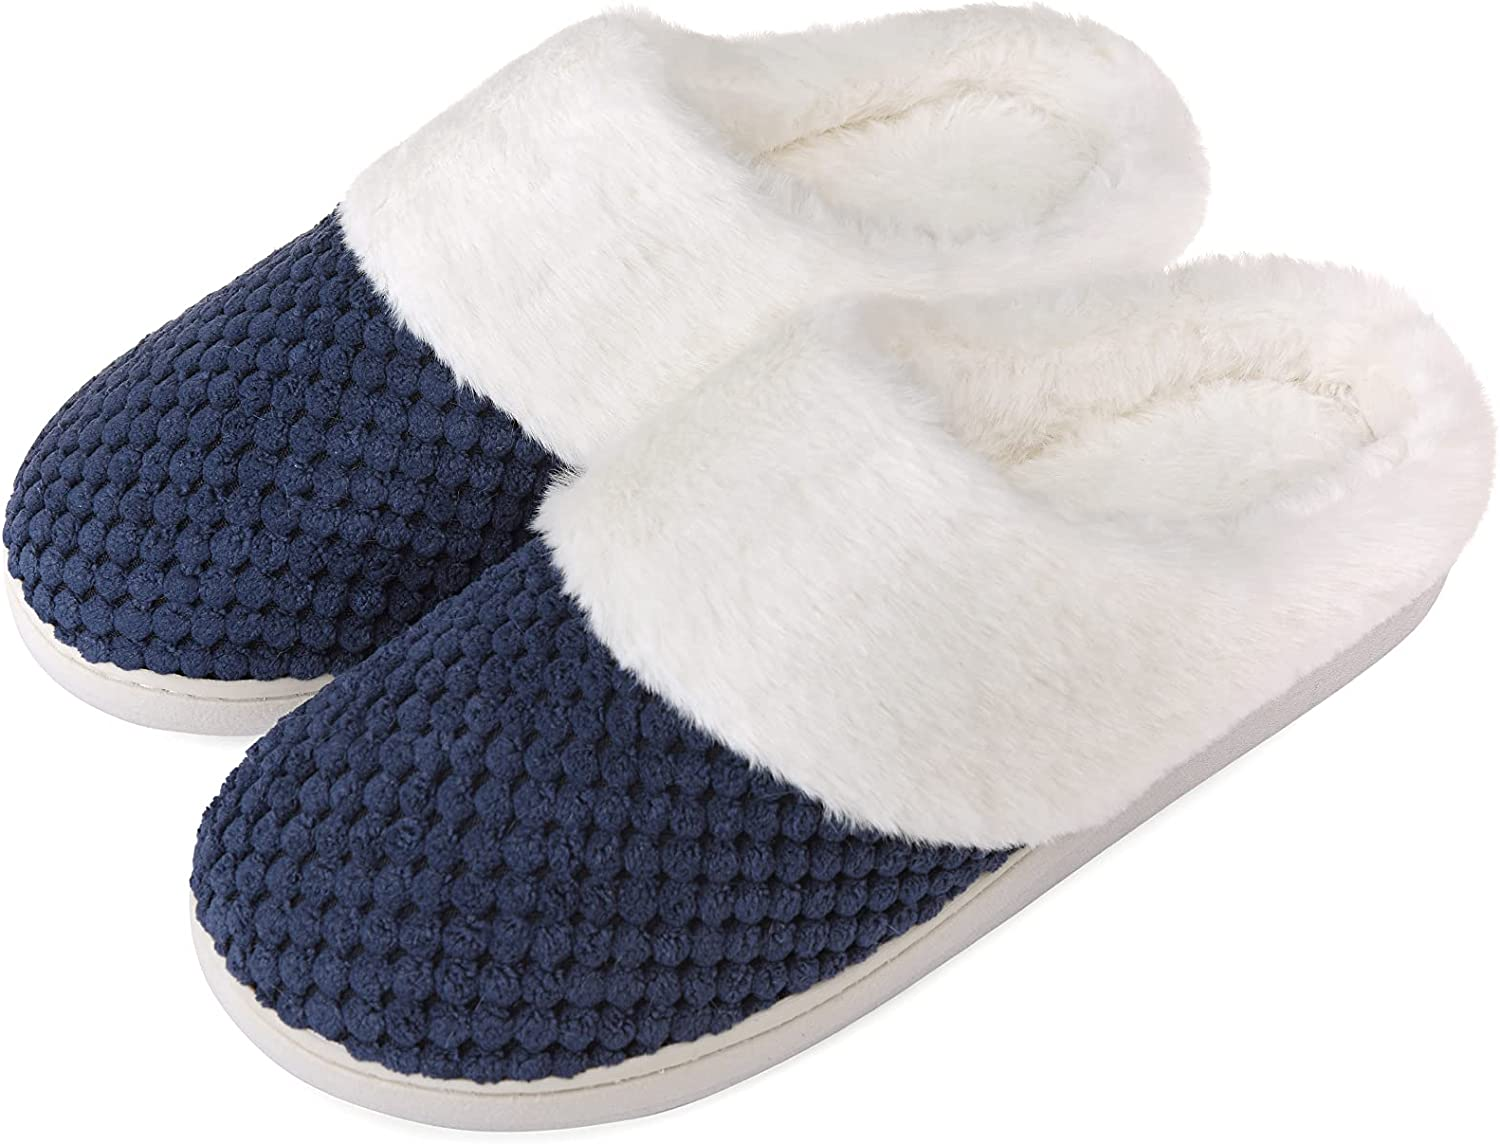 Women's Fuzzy excellence Translated Slippers Slip On House P Shoes Comfort Memory Foam